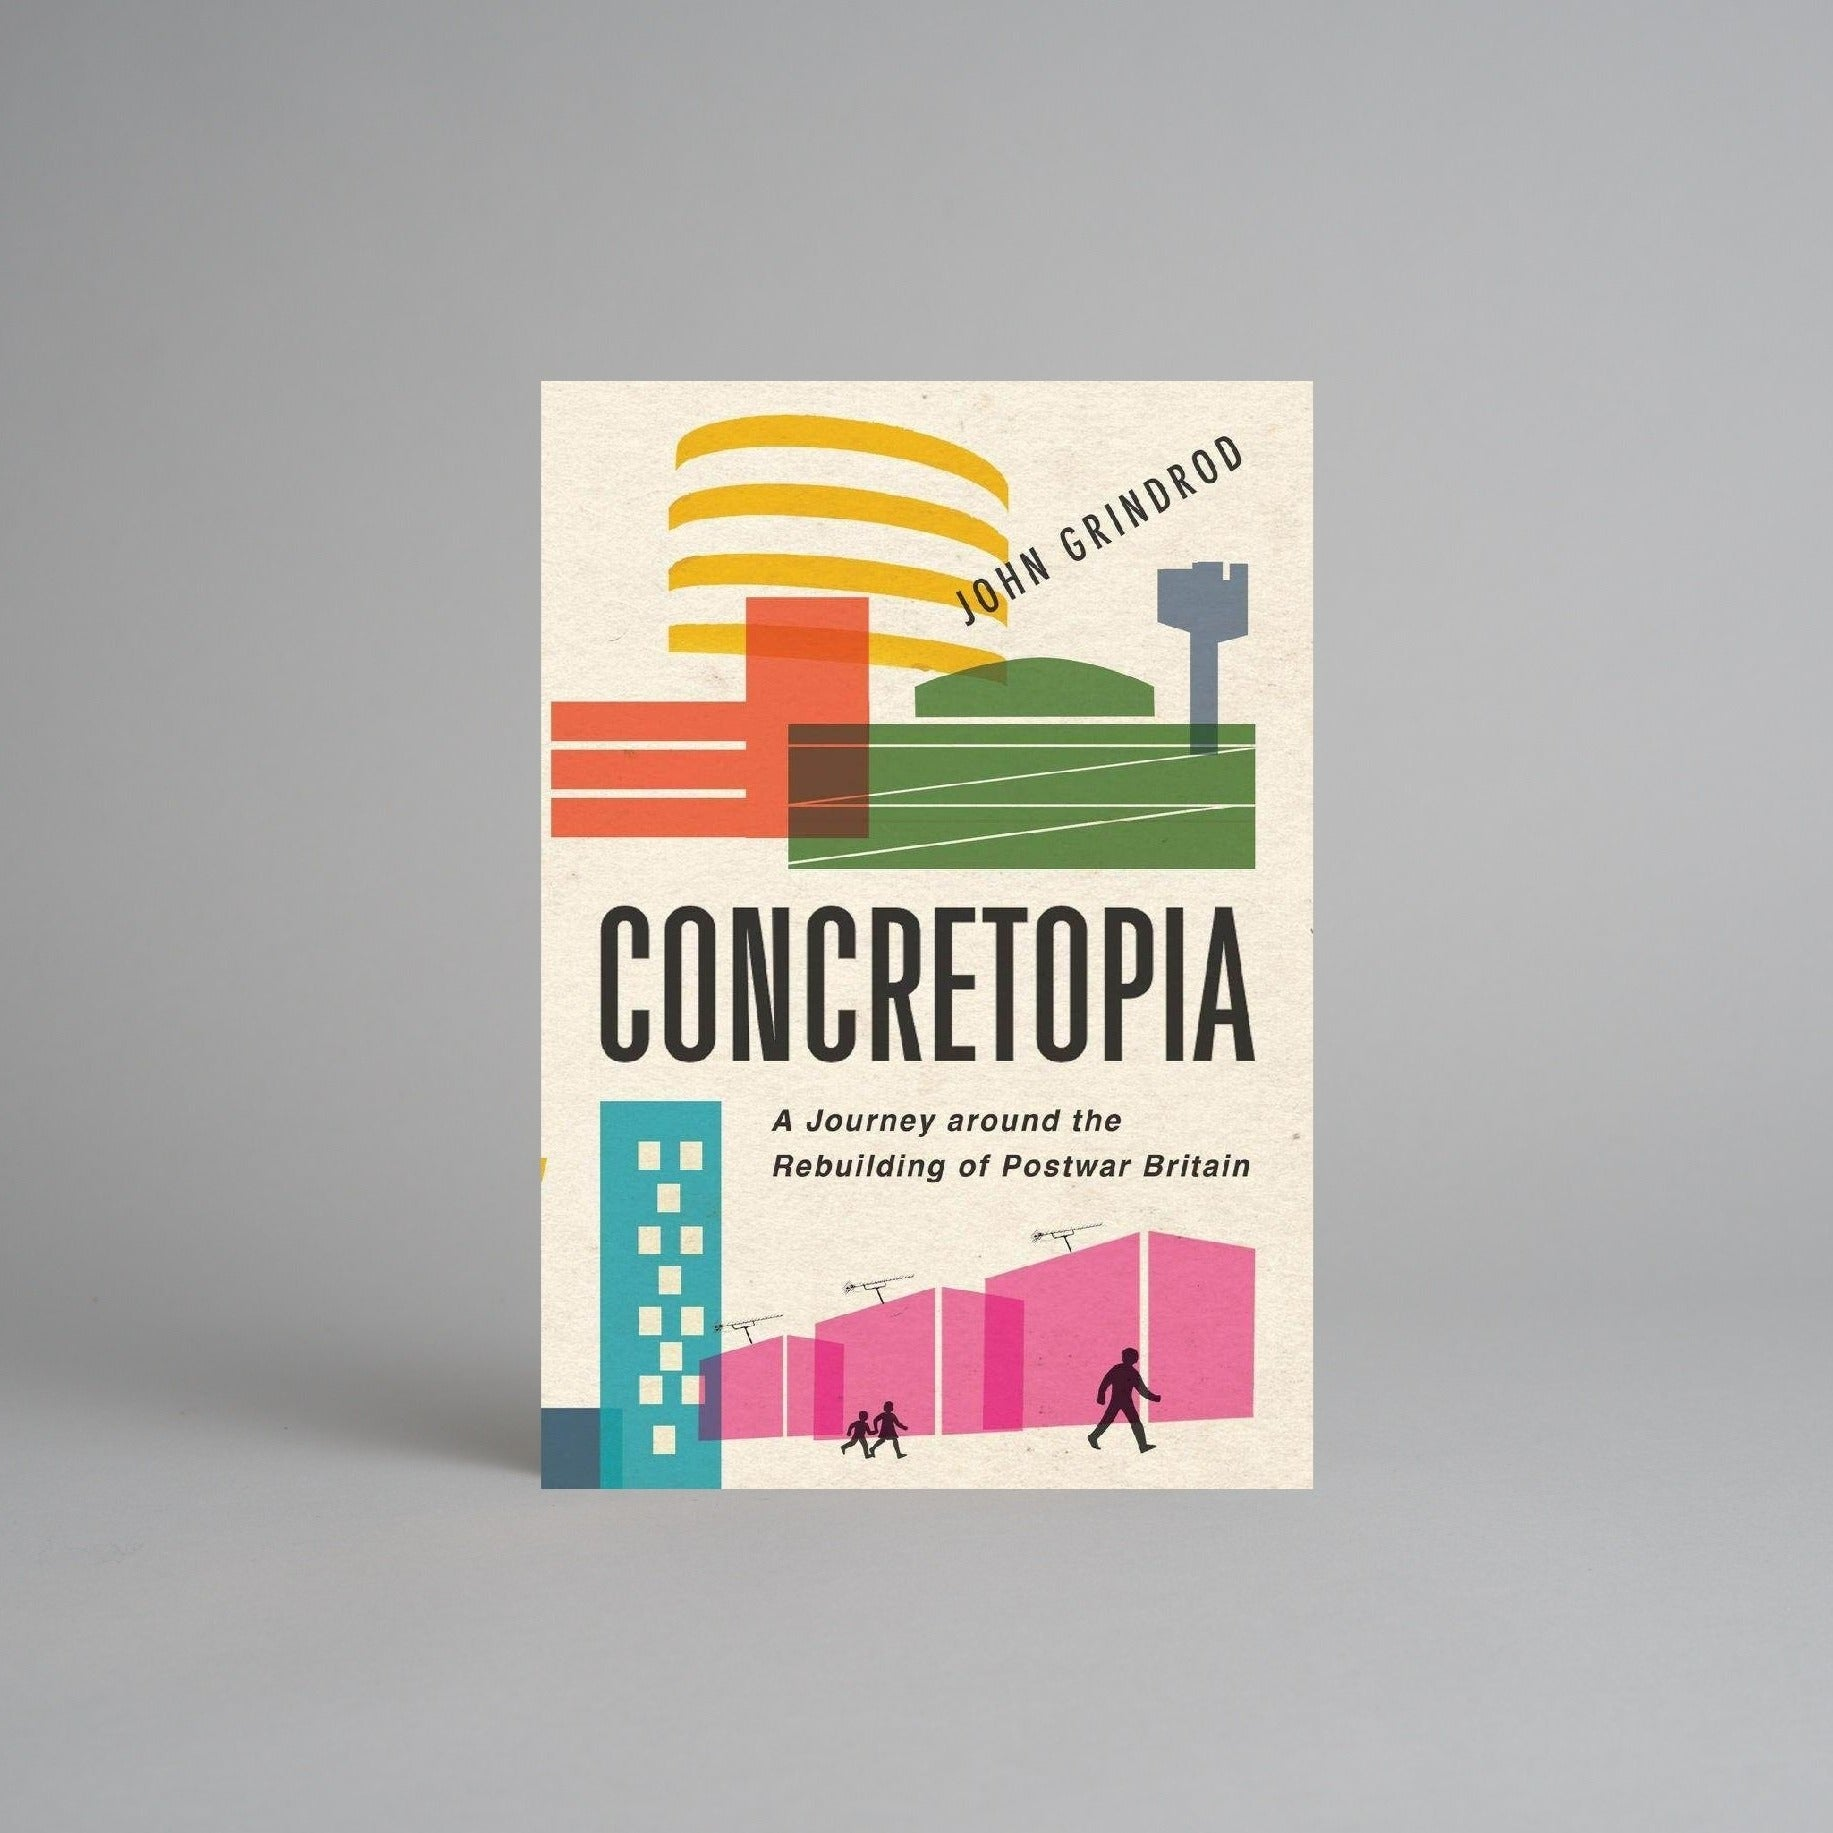 Concretopia: A Journey Around the Rebuilding of Postwar Britain by John Grindrod